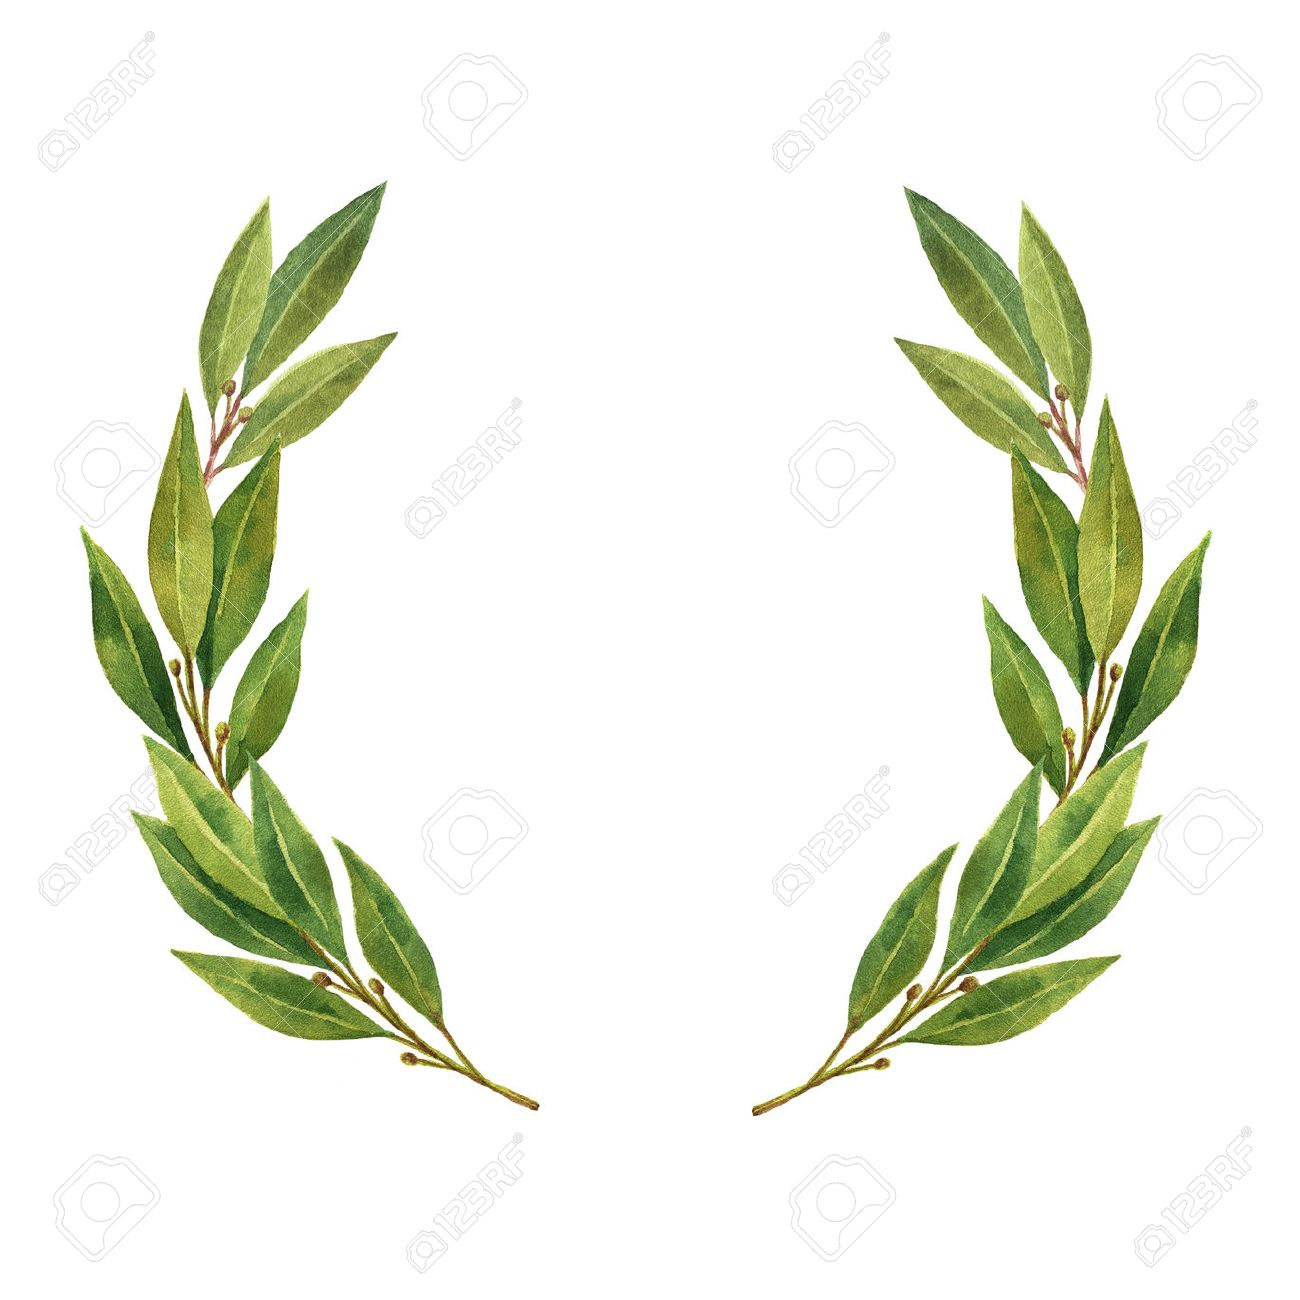 watercolor bay leaf wreath isolated on white background stock photo